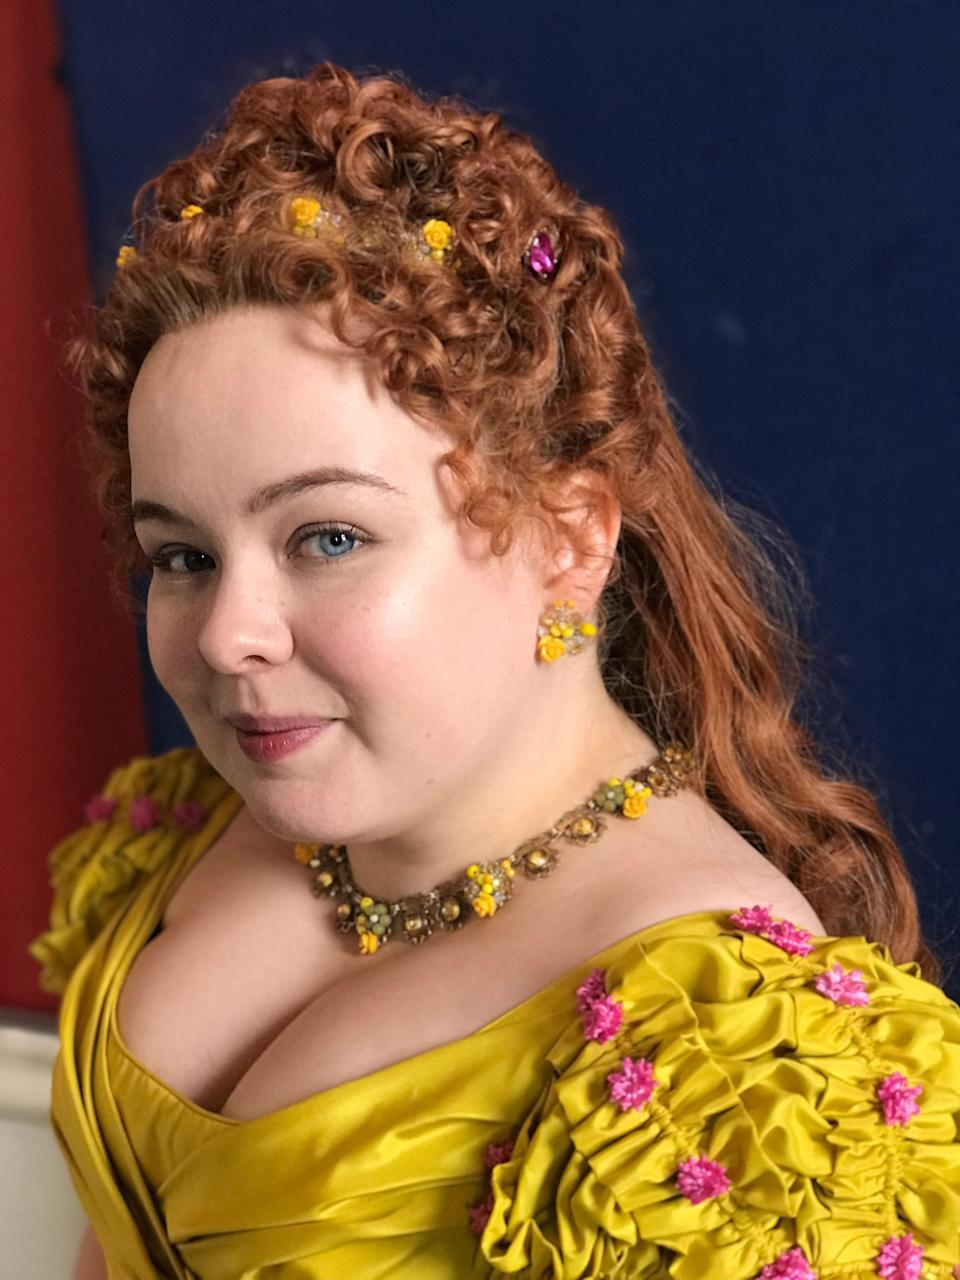 An up-close look at Nicola Coughlin's mustard yellow gown with pink floral accents. In addition to Glaser, John Norster and Ellen Mirojnick are also costume designers on the series.